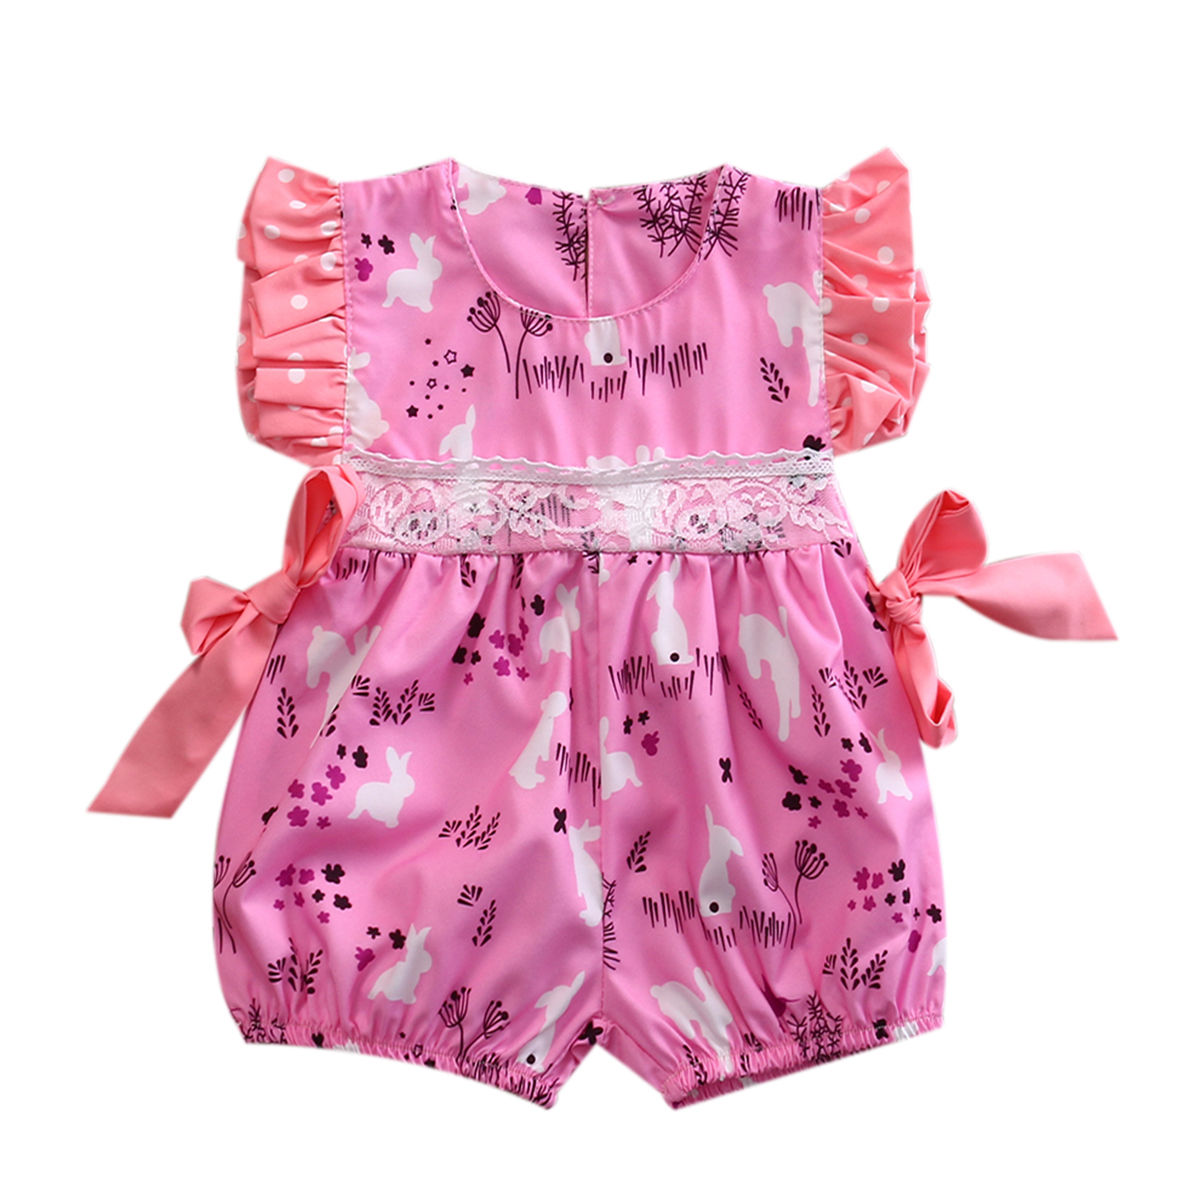 Newborn Toddler Baby Girls Clothes Lace Rabbit Jumpsuit One-Piece Romper bodysuit Sunsuit